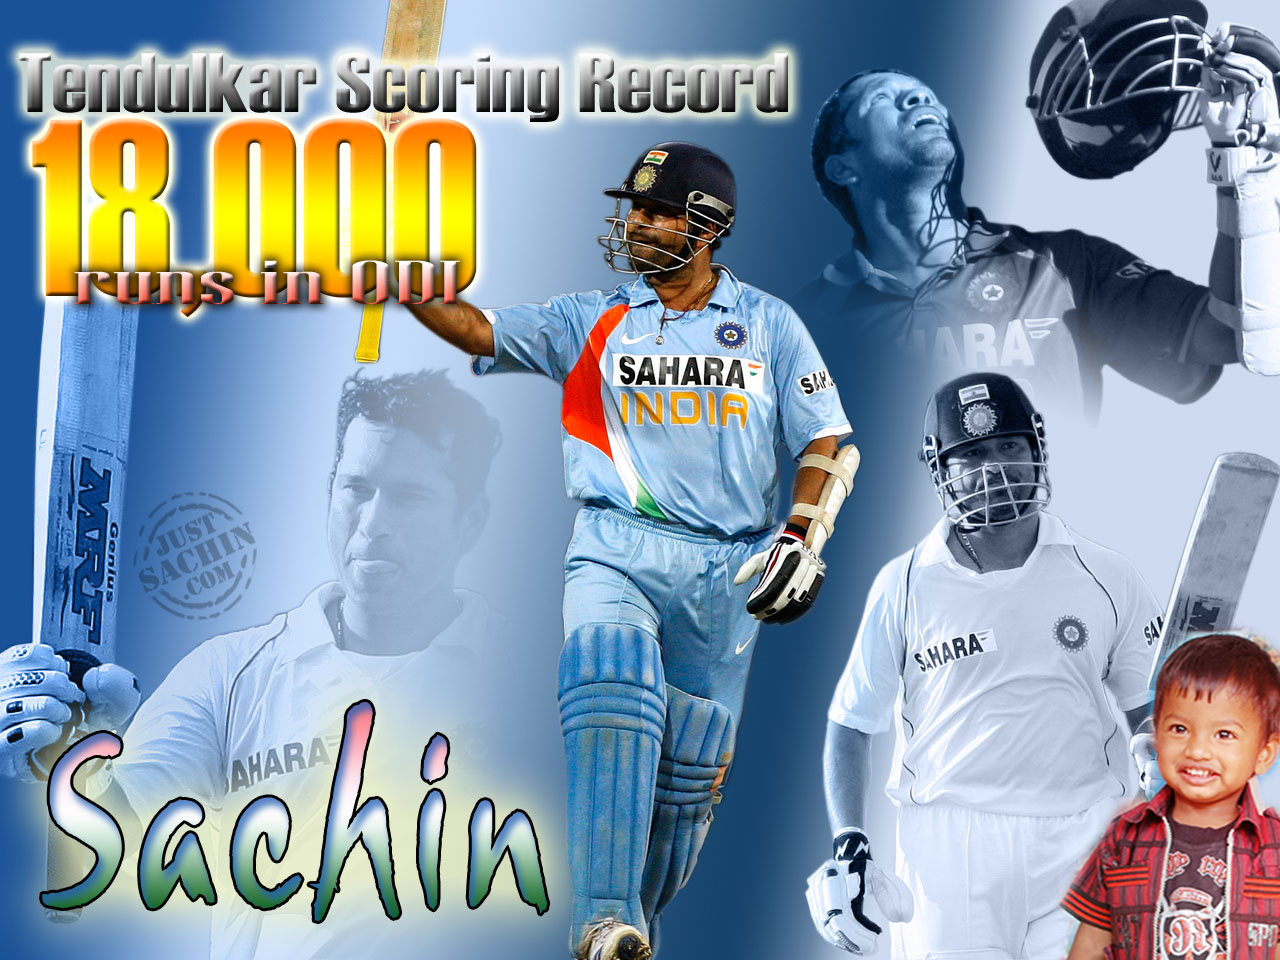 sachin tendulkar scoring record 18,000 runs in odis – wisdom unlimited